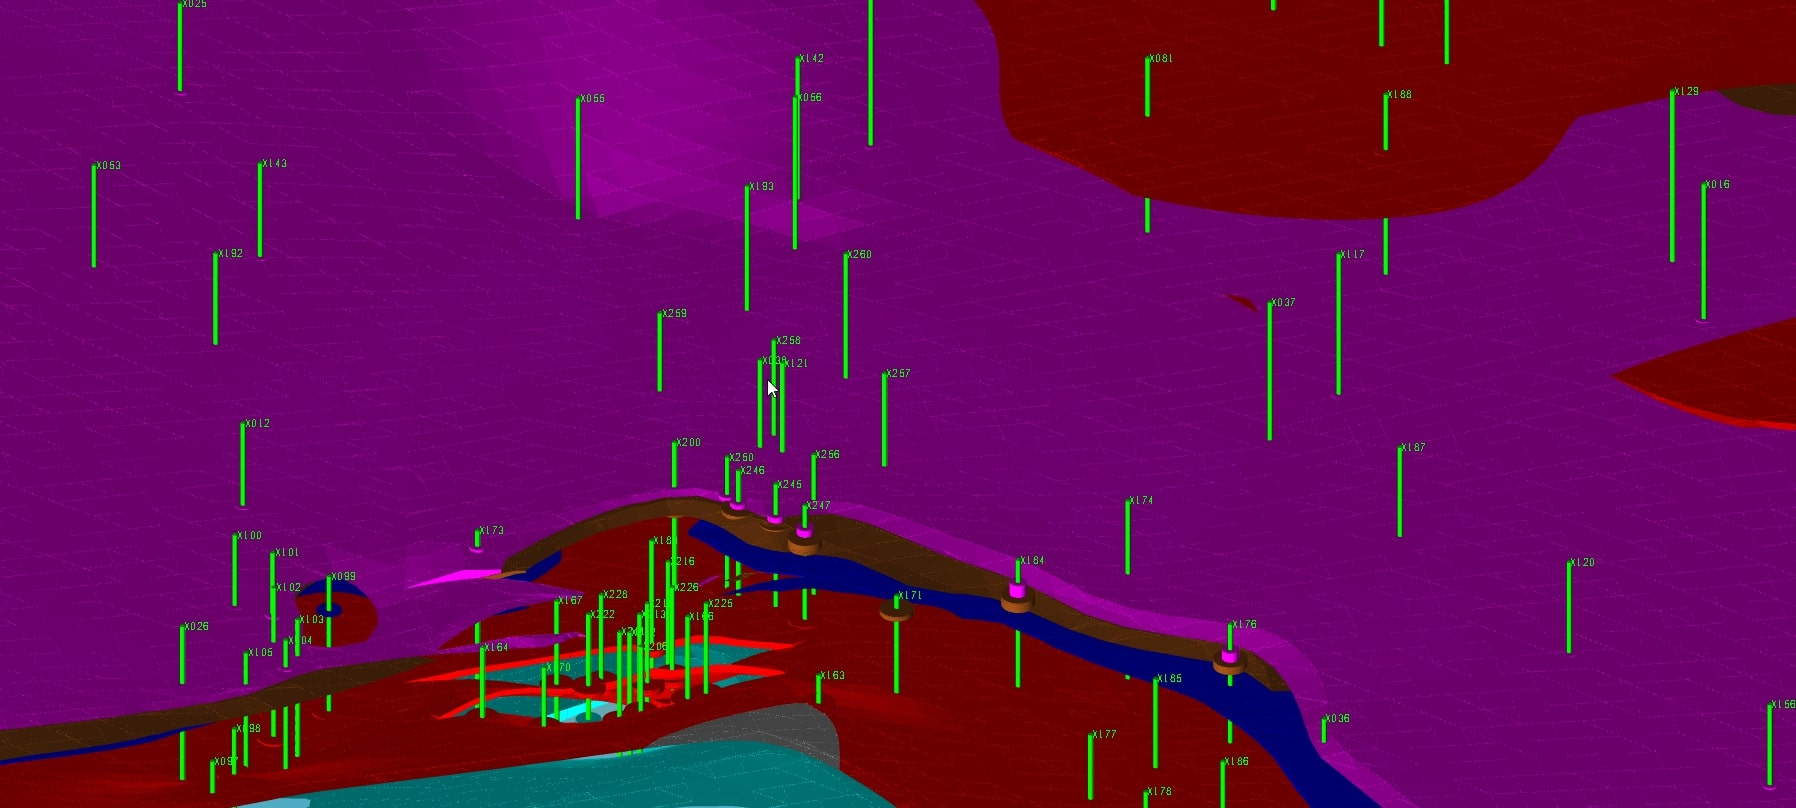 3D visualisation of the geological database available in MineScape - Geological Modelling & Mine Planning Software